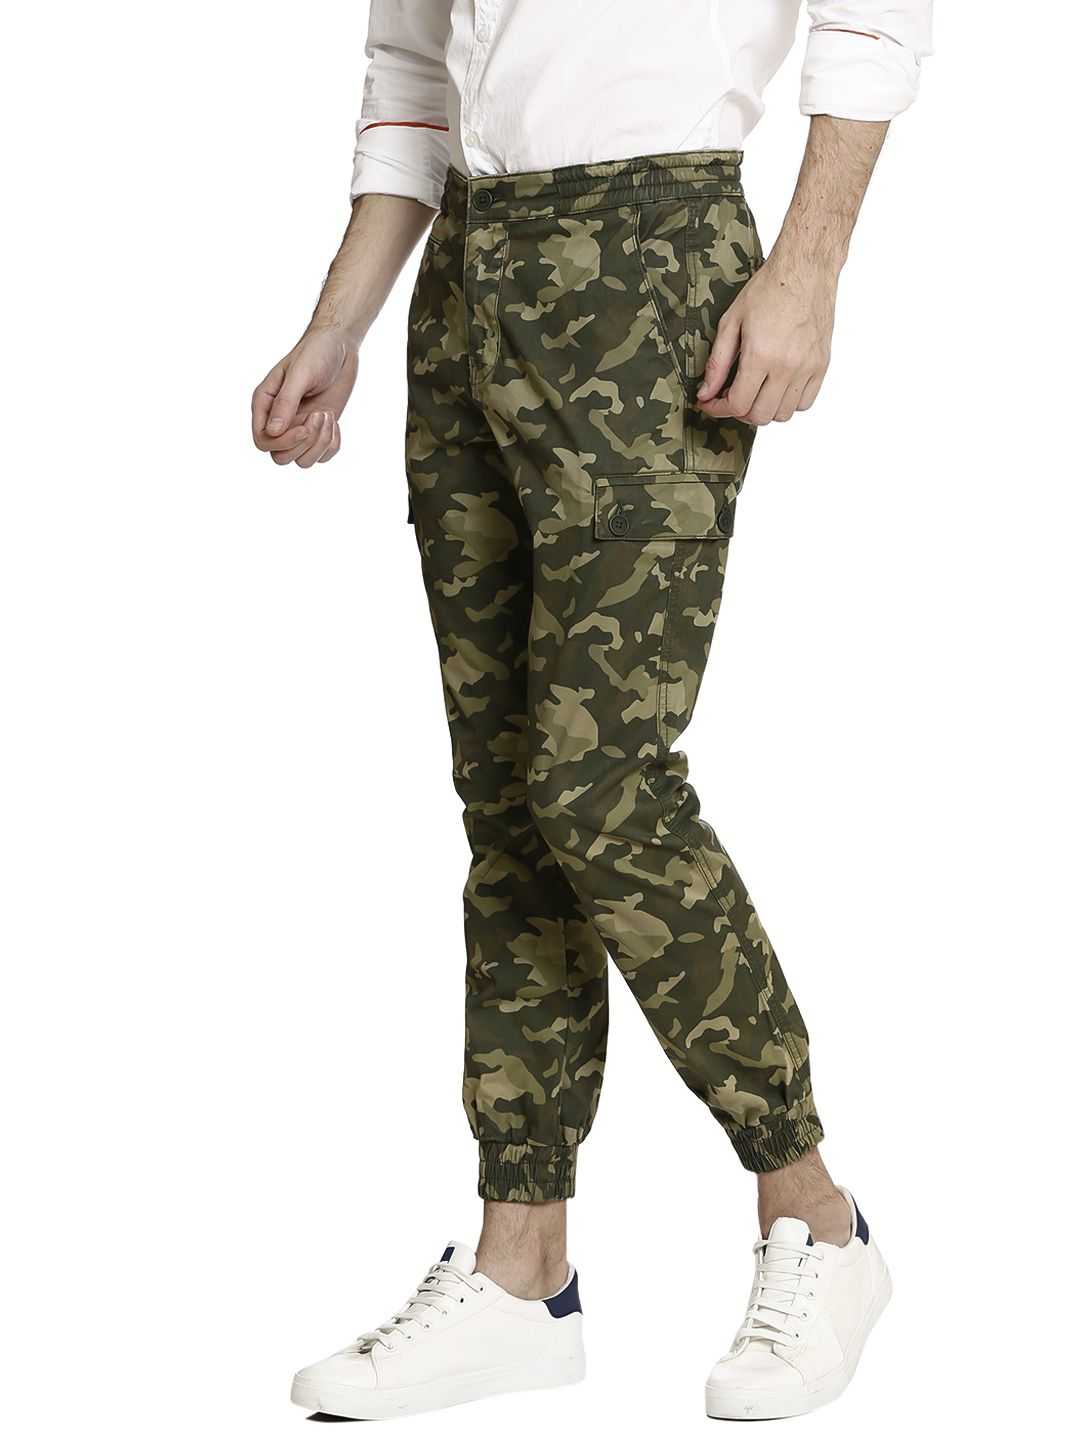 United Colors of Benetton Olive Green Regular -Fit Flat Cargos